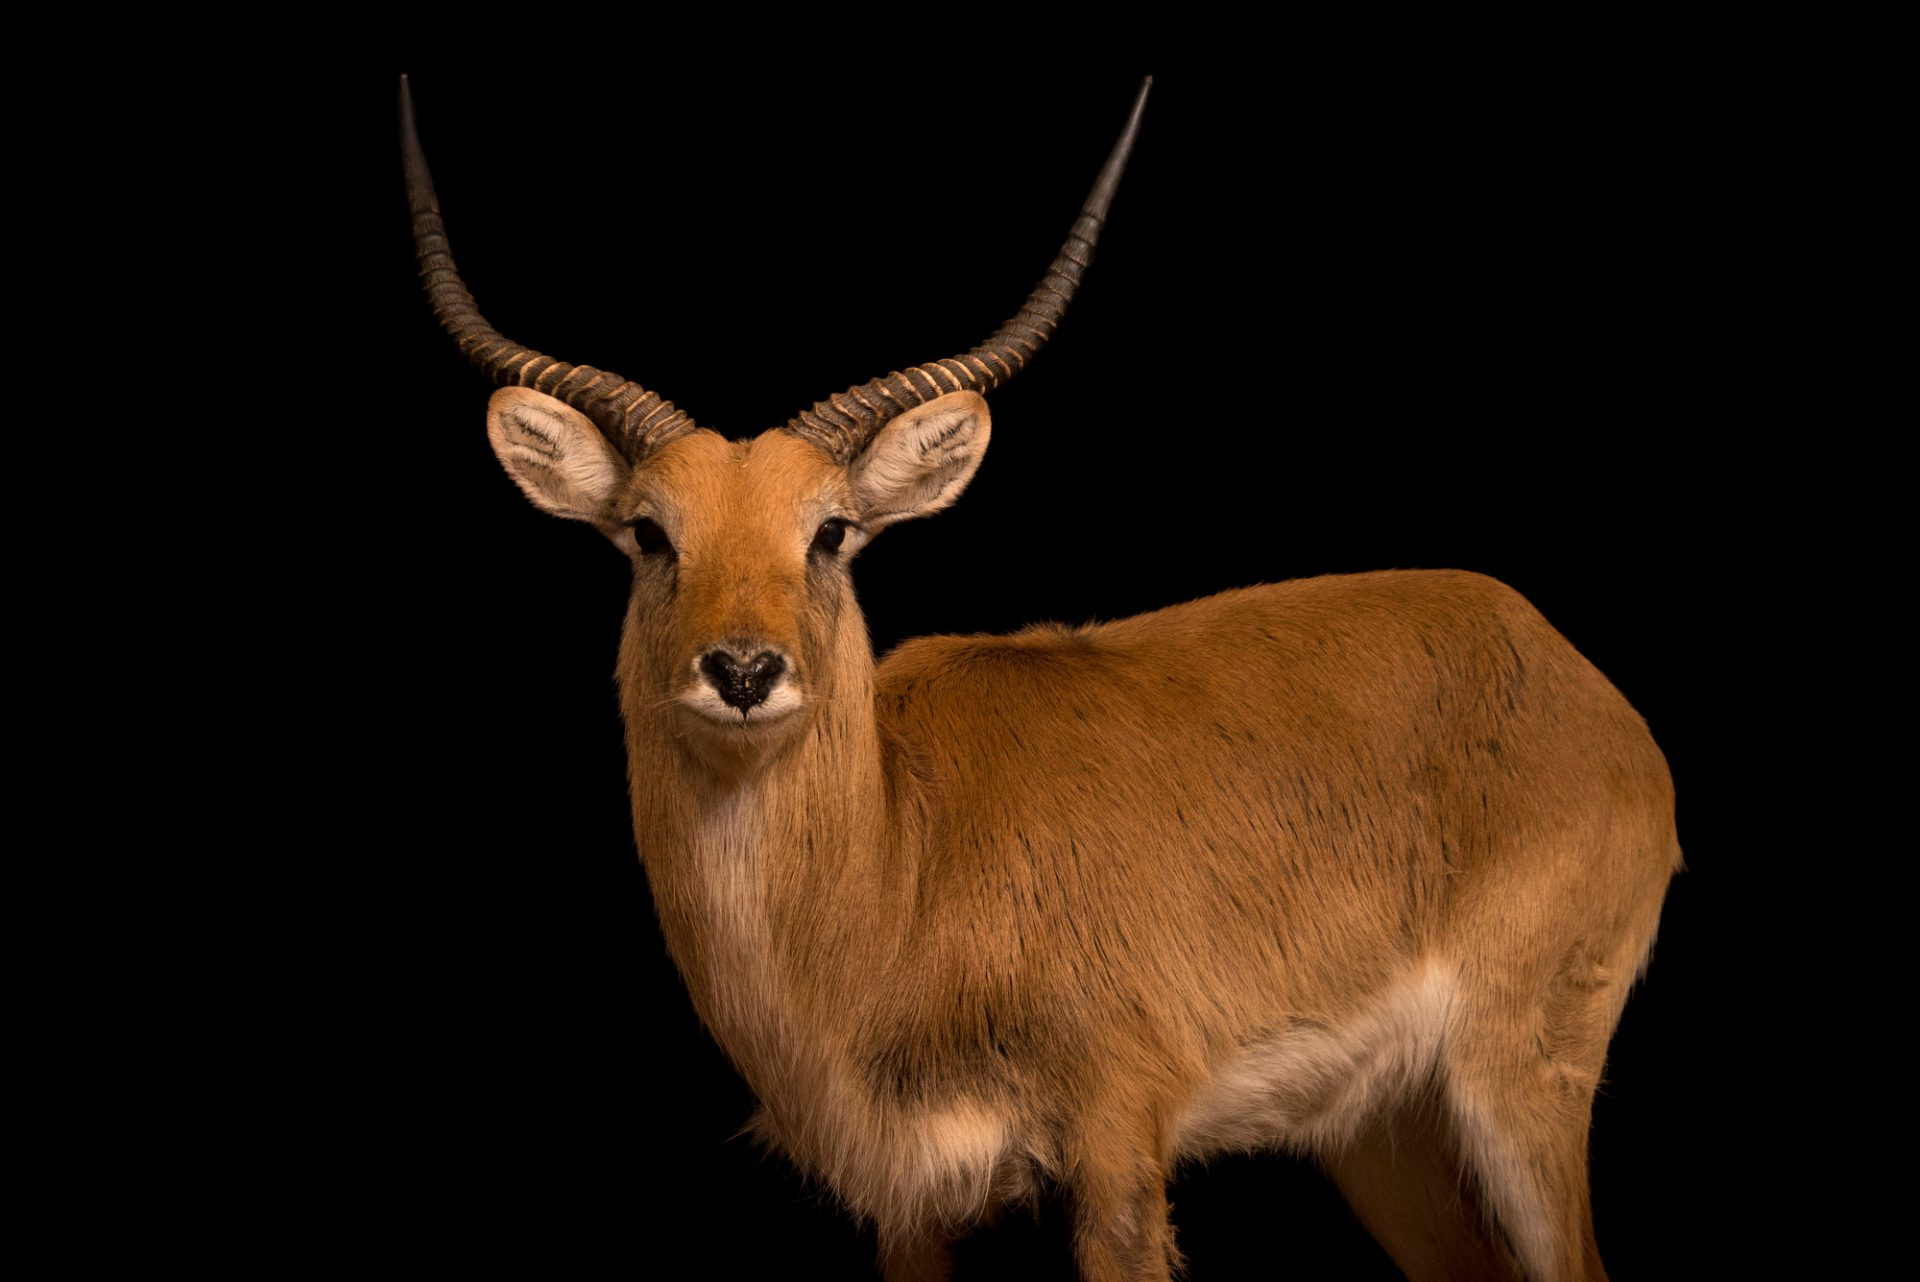 Photo: A male Kafue lechwe (Kobus kaufensis) at Parco Natura Viva in Bussolengo, Italy.